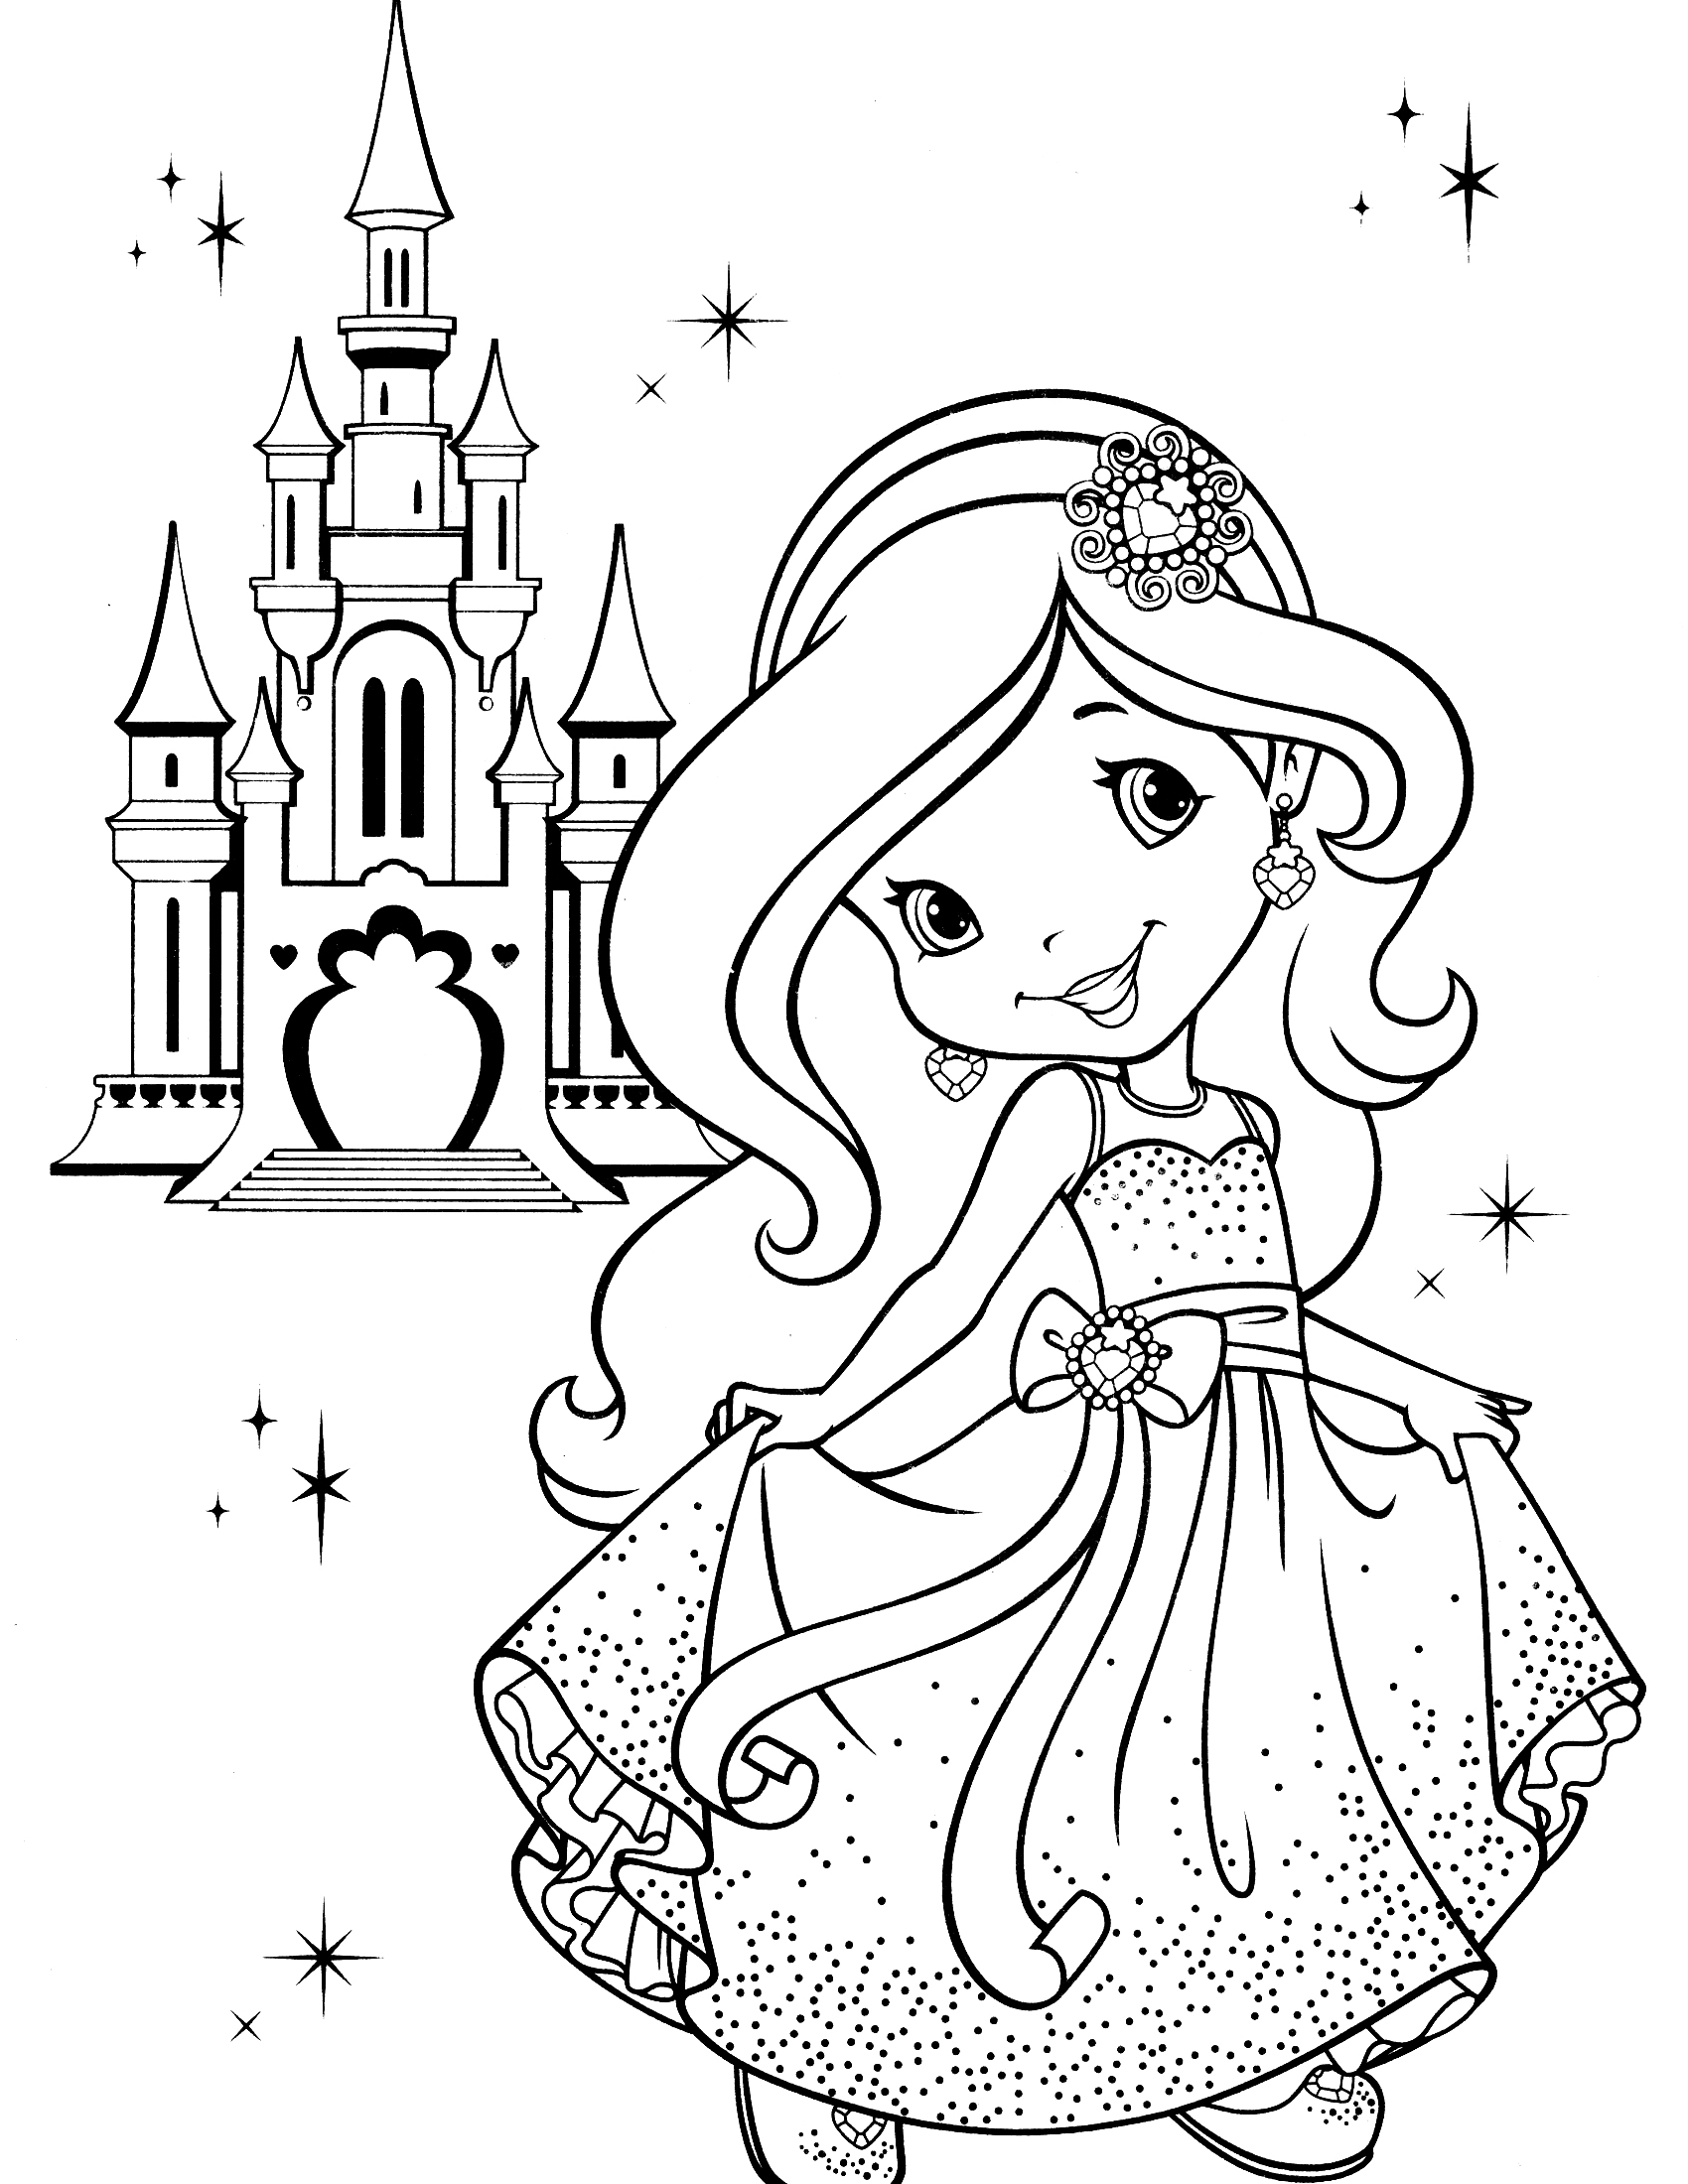 Strawberry Shortcake Coloring Pages Strawberry Shortcake Coloring Pages Strawberry Shortcake Coloring